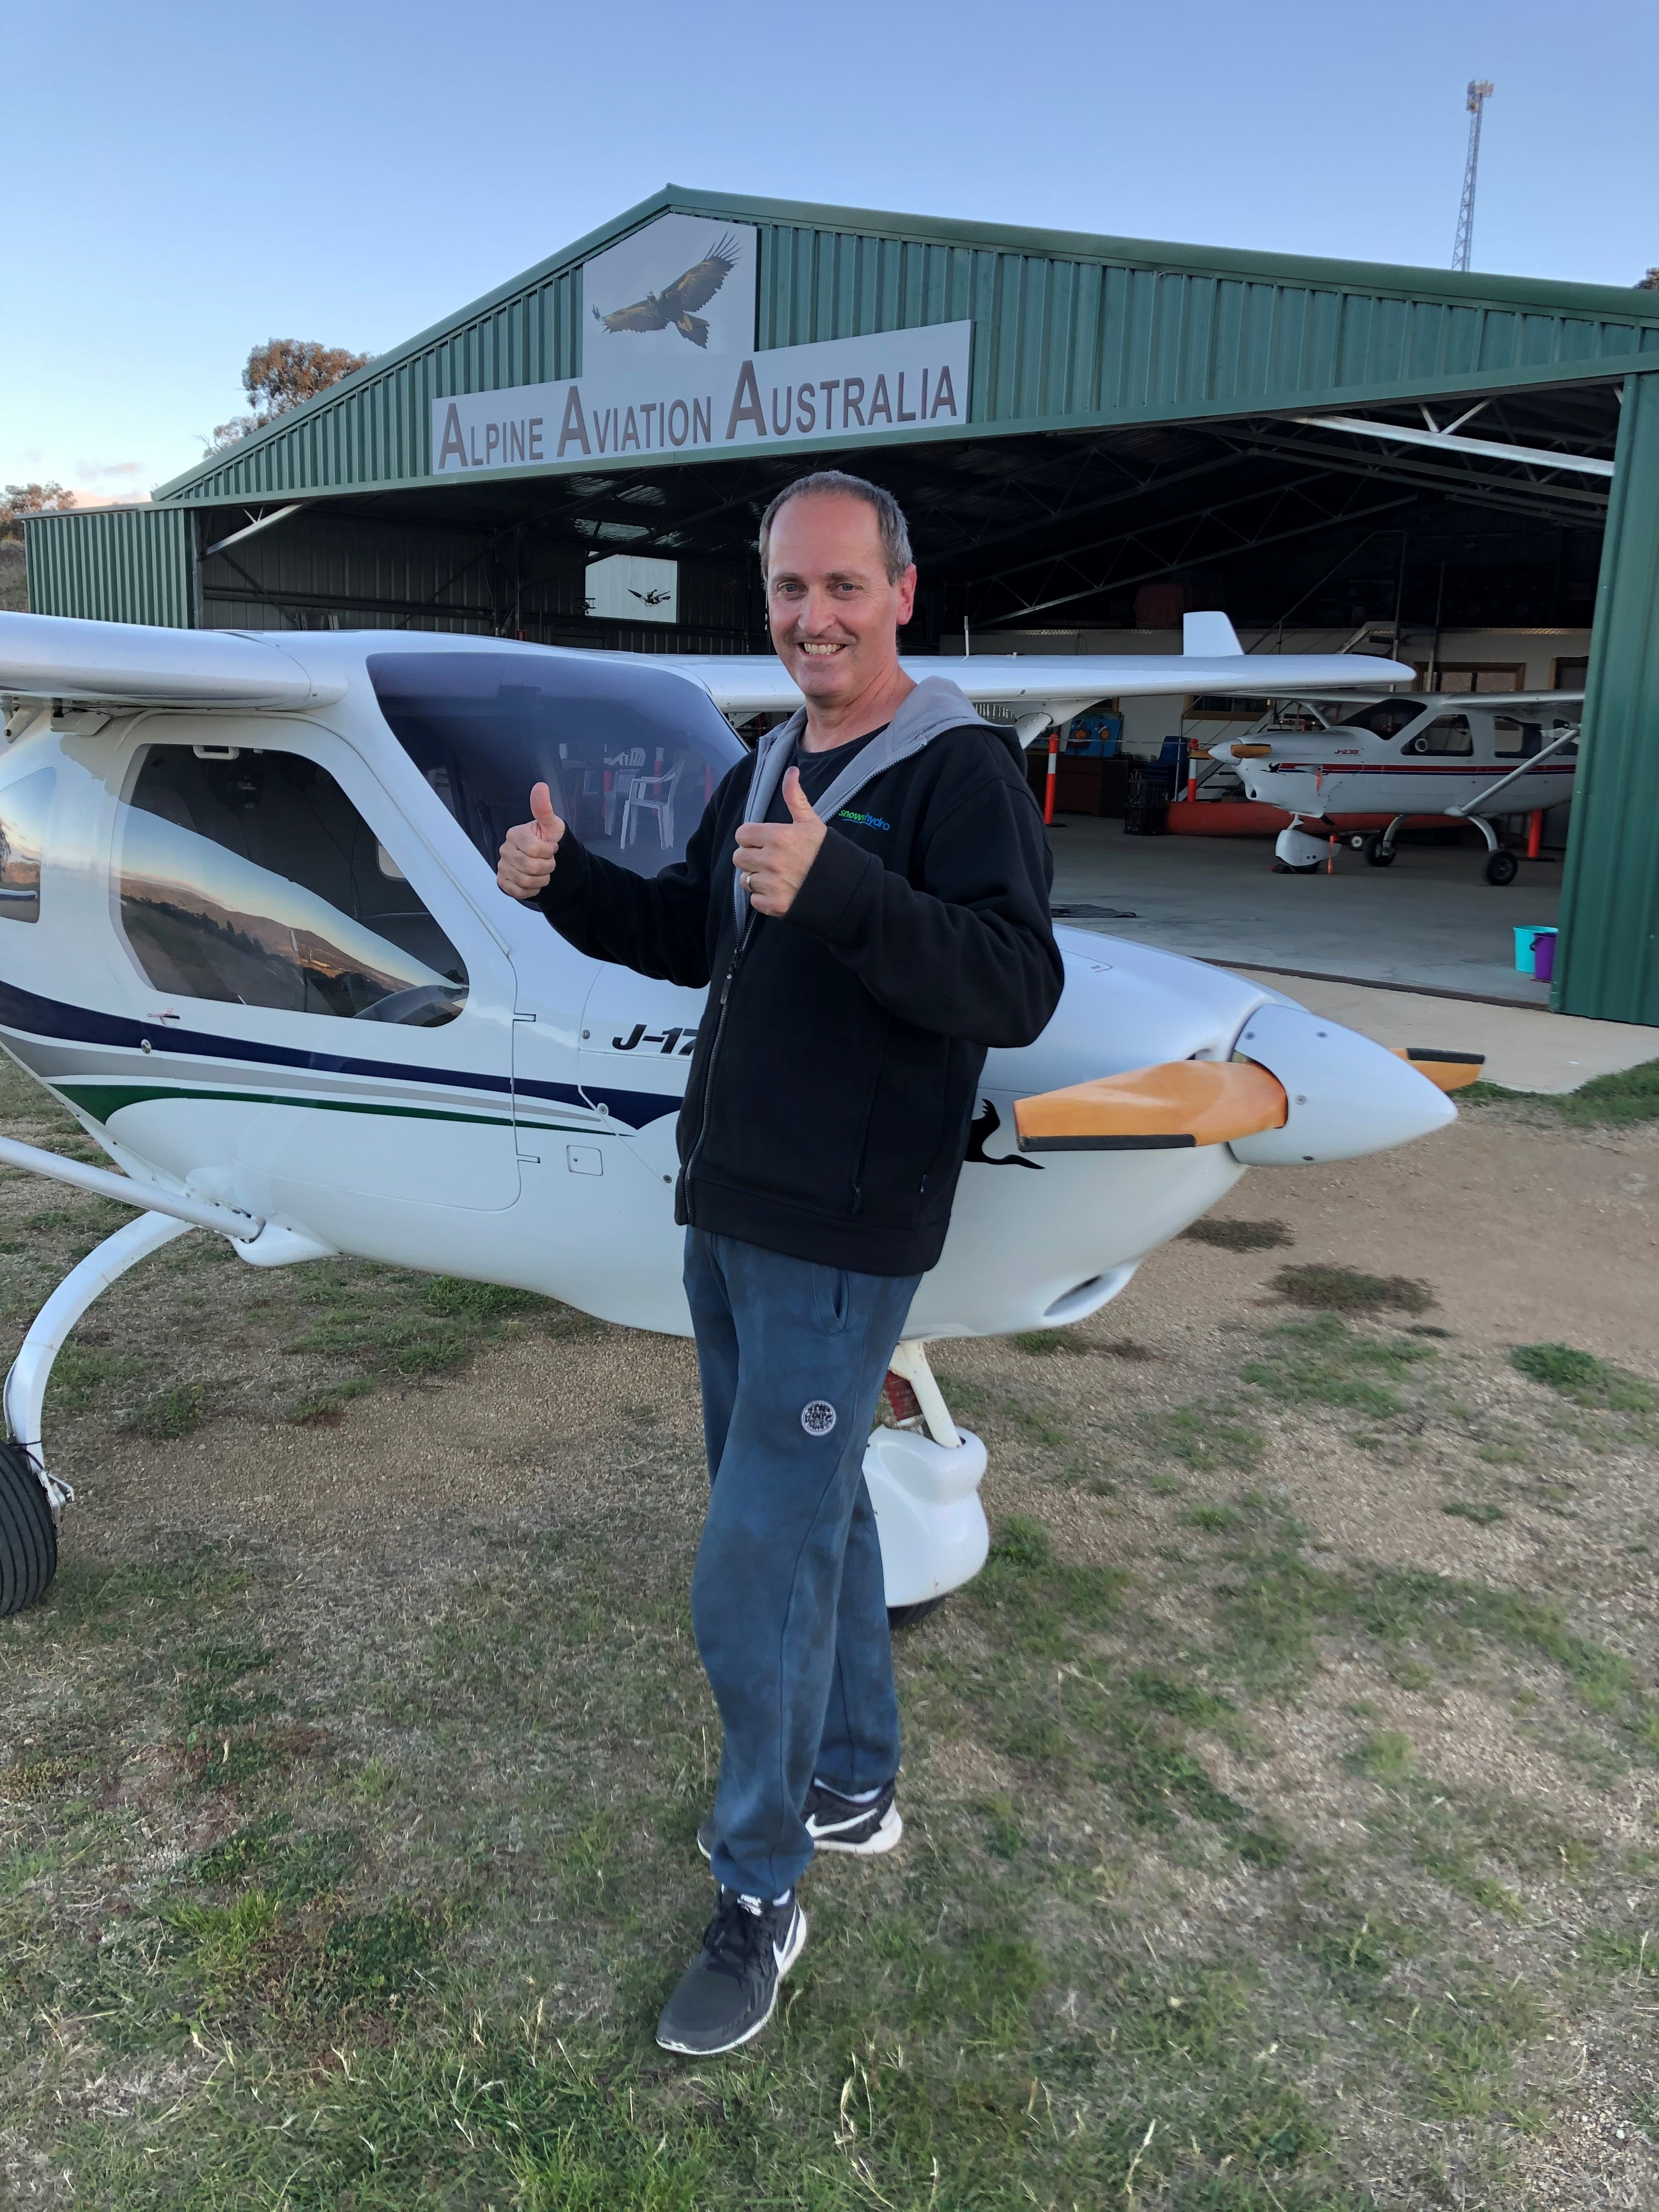 Rohan Pidcock after his first solo